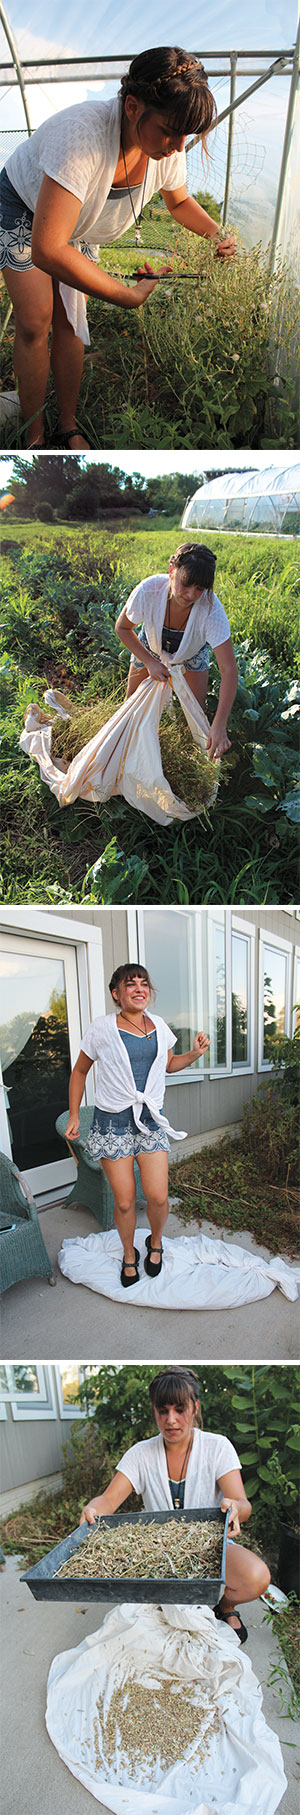 Top: Seed-saving begins in the field where Betsy carefully clips the stems of cilantro.After clipping the stems, Betsy places them on a white bedsheet (second photo) and gathers it up to bring the plants inside for drying, which can take several days. In the third photo, Betsy stomps on a bundle of dried radish seedpods and leftover brown twigs. Her dance breaks the dry pods, causing them to release the seeds within. Bottom: After most of the pods have burst, Betsy uses screens to sift out the extra pieces of radish plant, leaving a layer of brownish-red seeds.